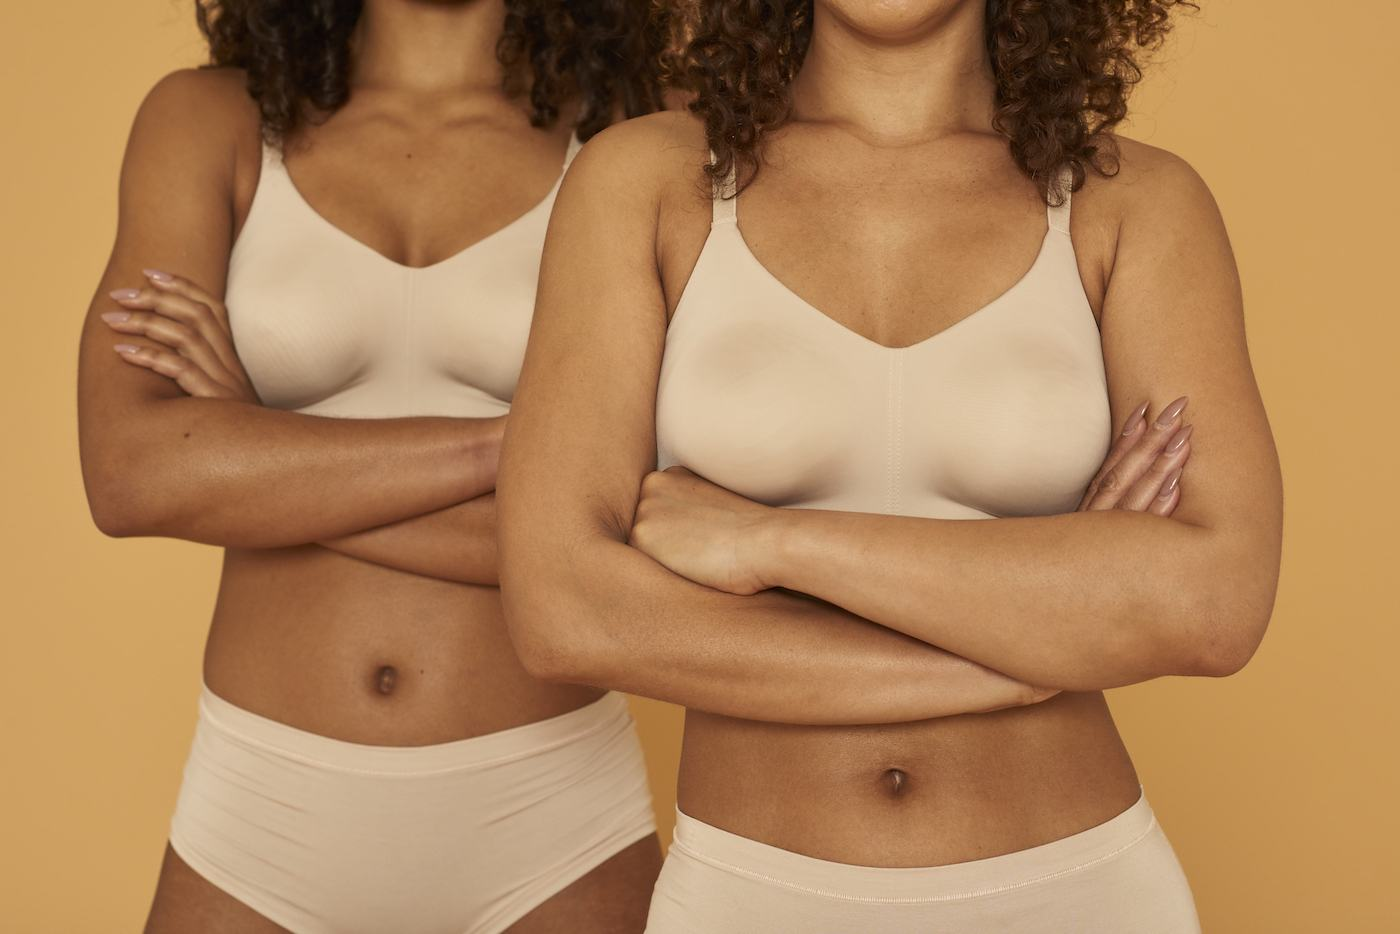 Thumbnail for 6 bra styles that every woman should own by the time she hits 30, according to a lingerie pro